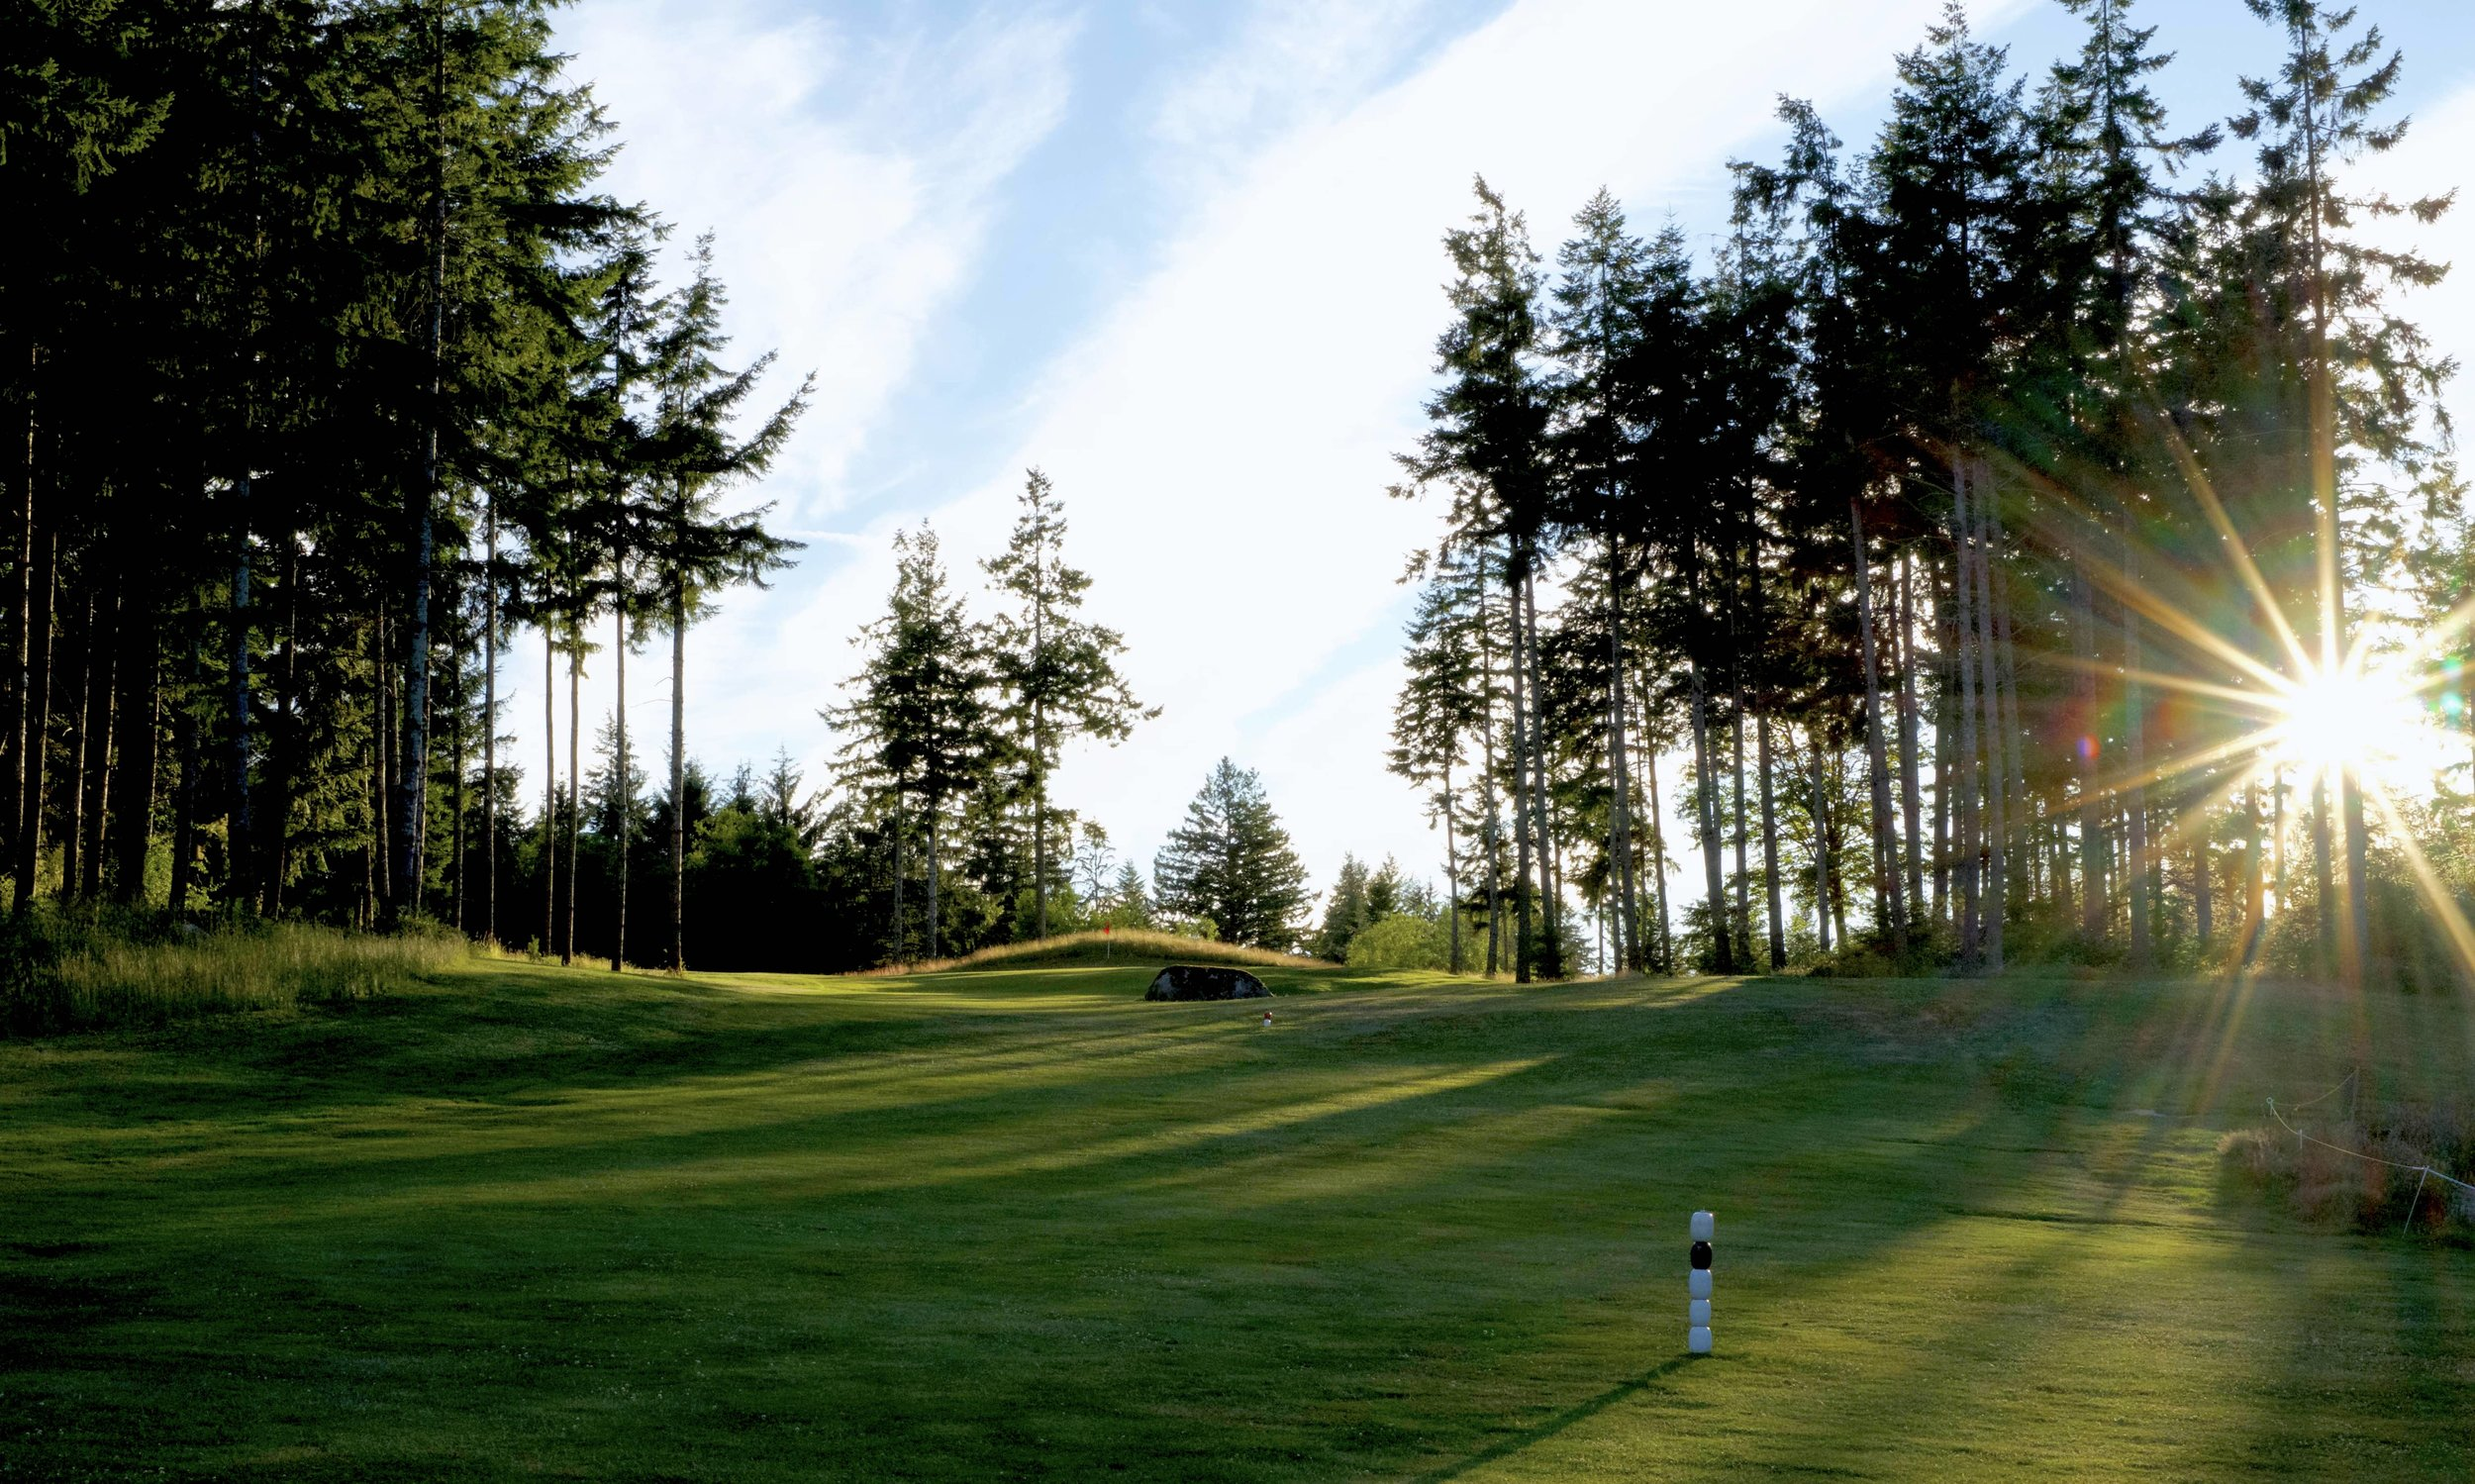 QuadraGolf_Hole7_approach_DSC00528.jpg